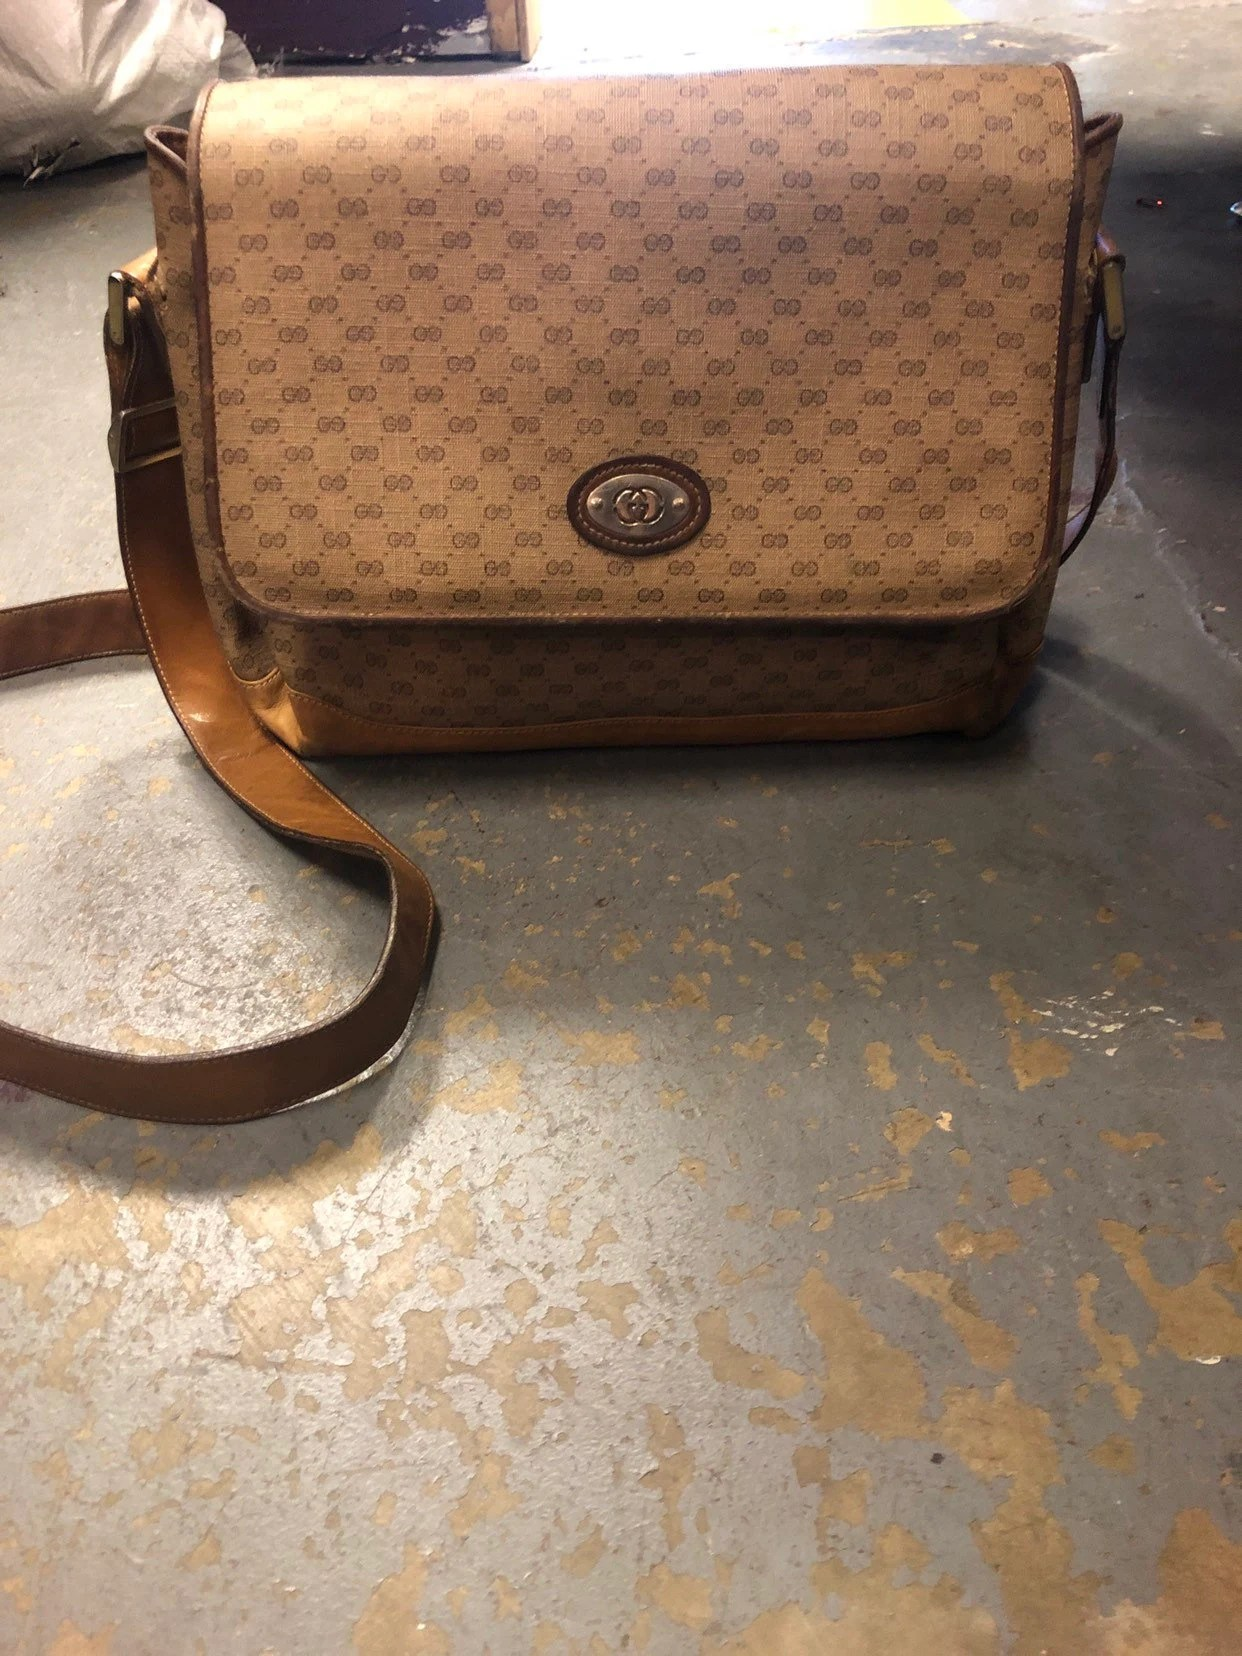 Etsy Vintage Gucci Authentic Gorgeous Vintage Gucci Crossbody Bag